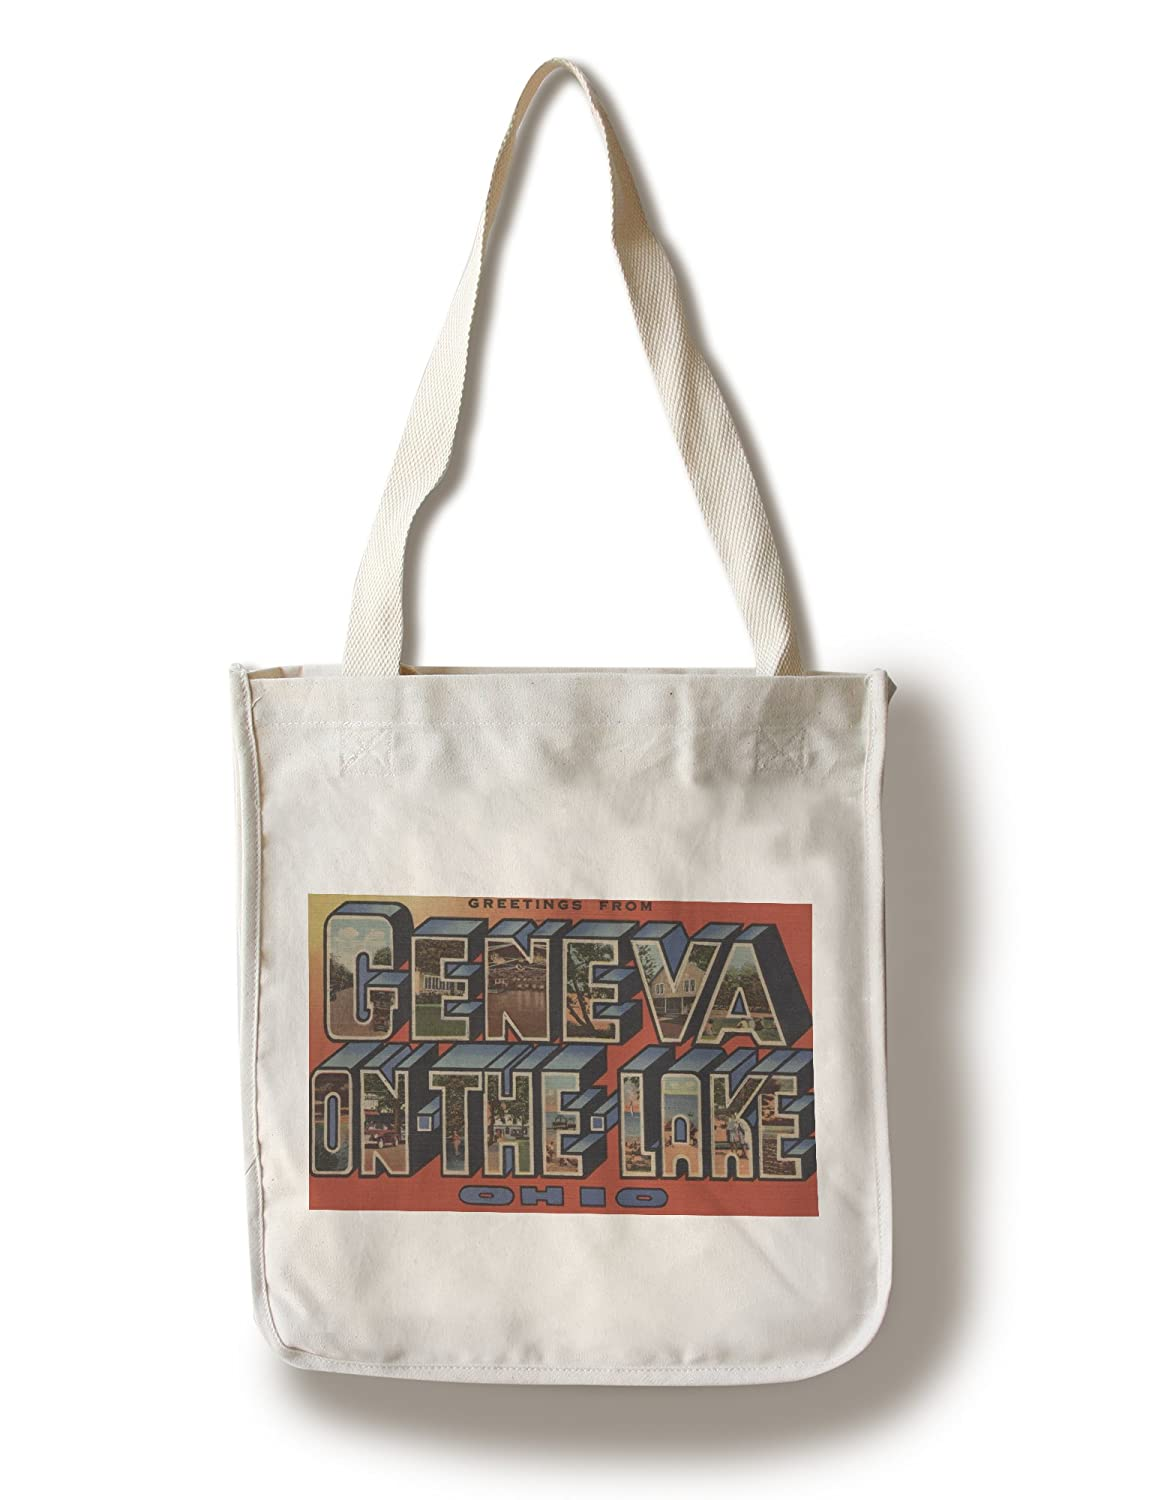 Greetings from geneva-on-the-lake、オハイオ Canvas Tote Bag LANT-7138-TT B0182QW6H8  Canvas Tote Bag